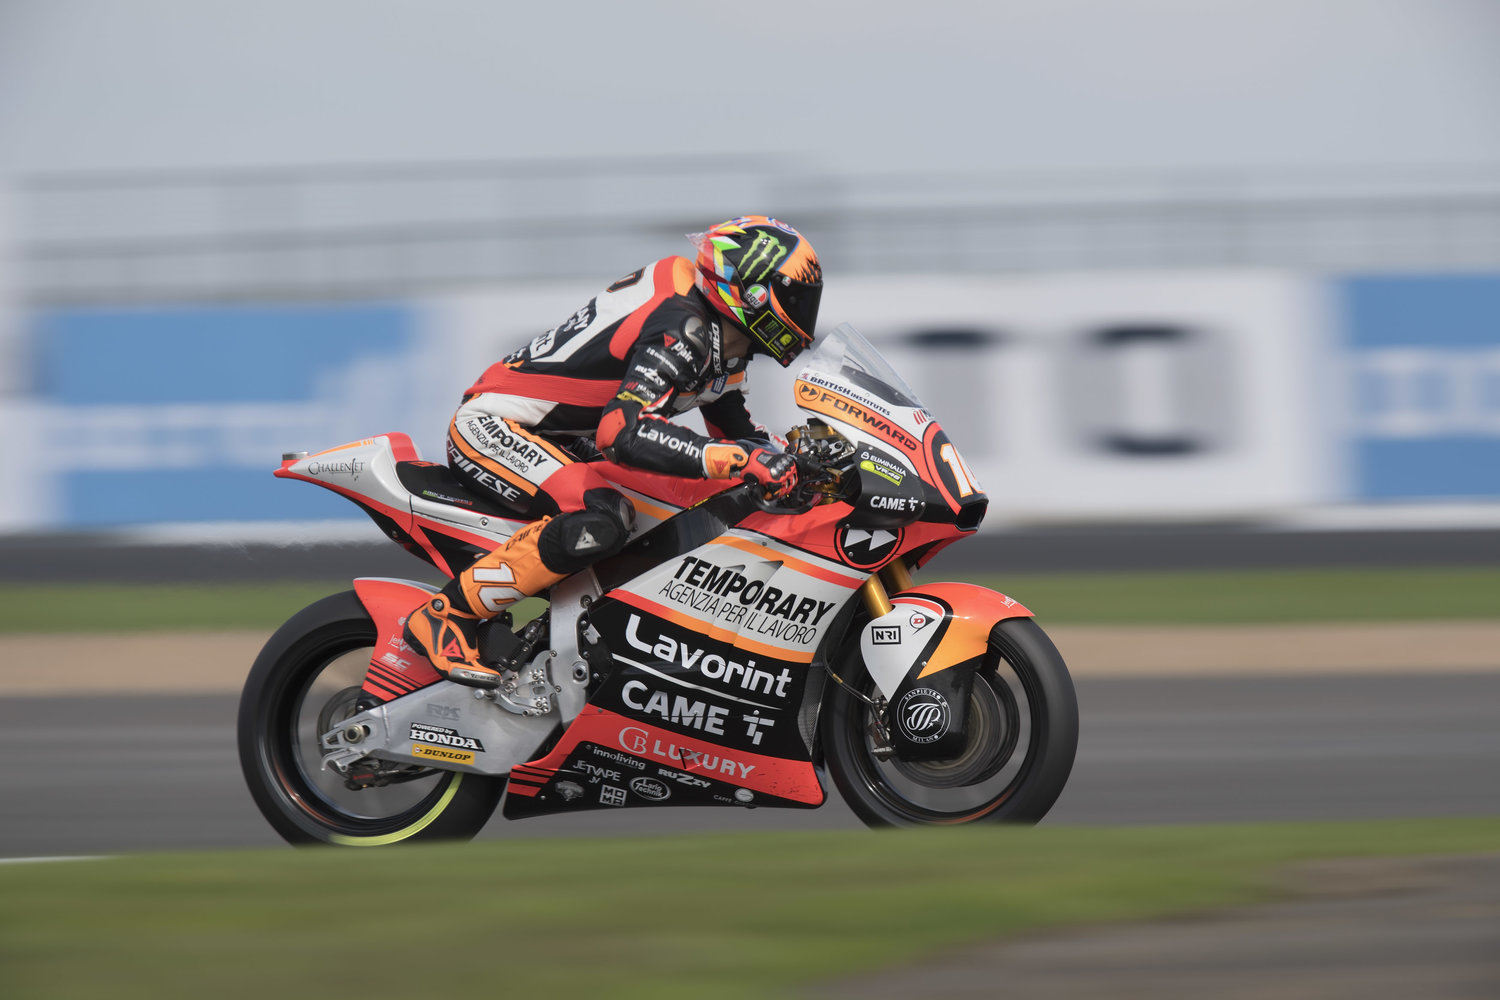 Marini and Baldassarri boast with excellent English qualifying performance